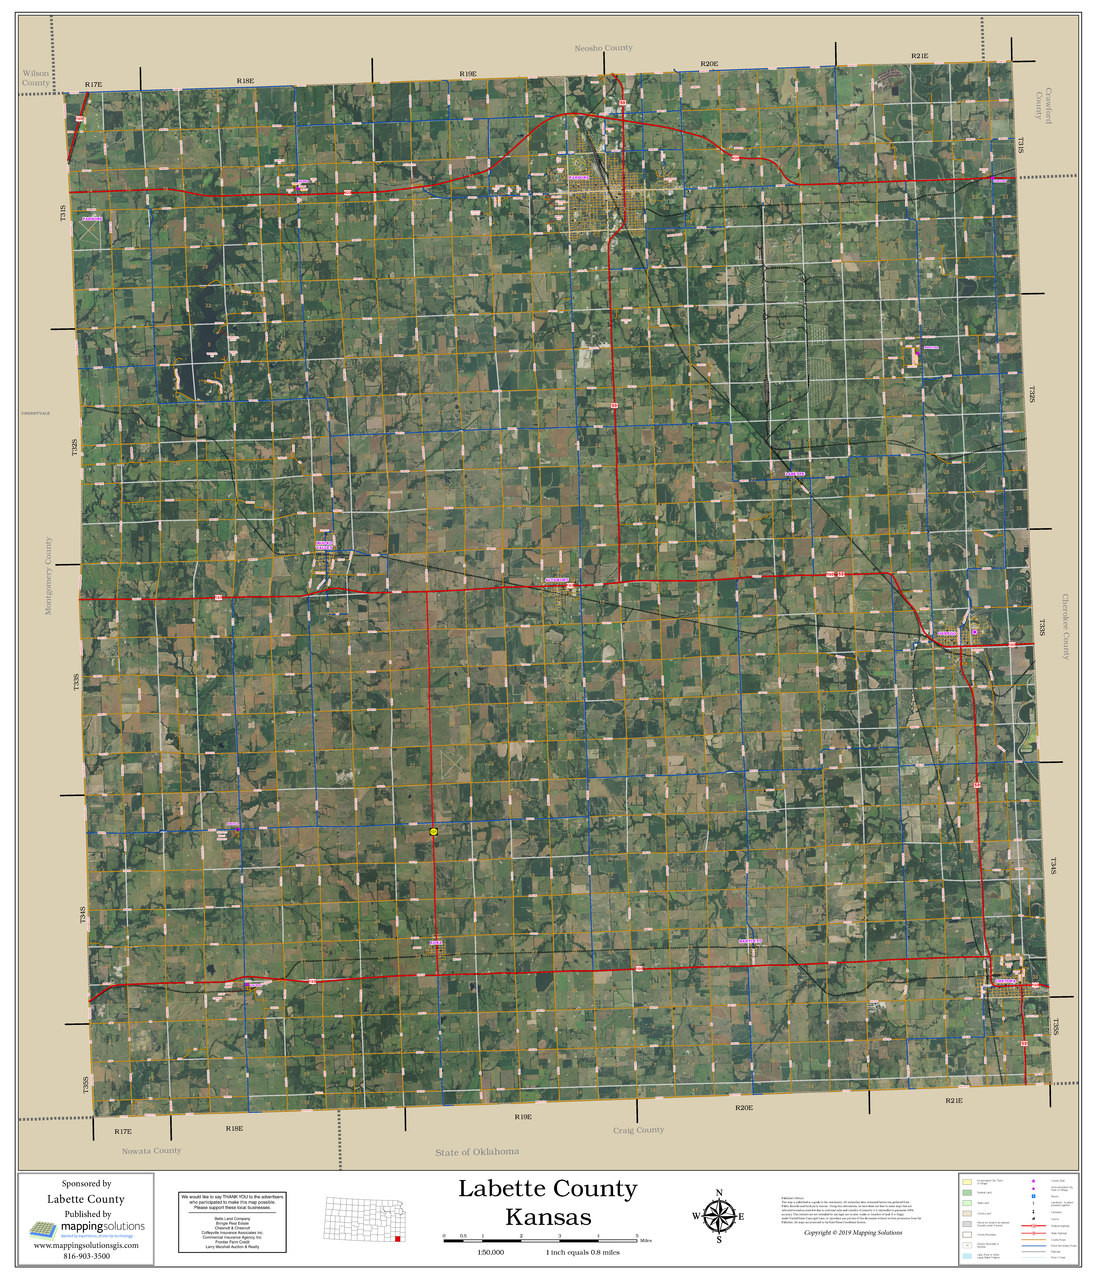 Labette County Kansas 2019 Aerial Wall Map on kansas highway road map, kansas golf courses map, kansas major cities map airports, kansas ghost towns map, kansas highway 70 map, kansas interstate highways, kansas counties and towns, kansas state map, kansas map cities towns,